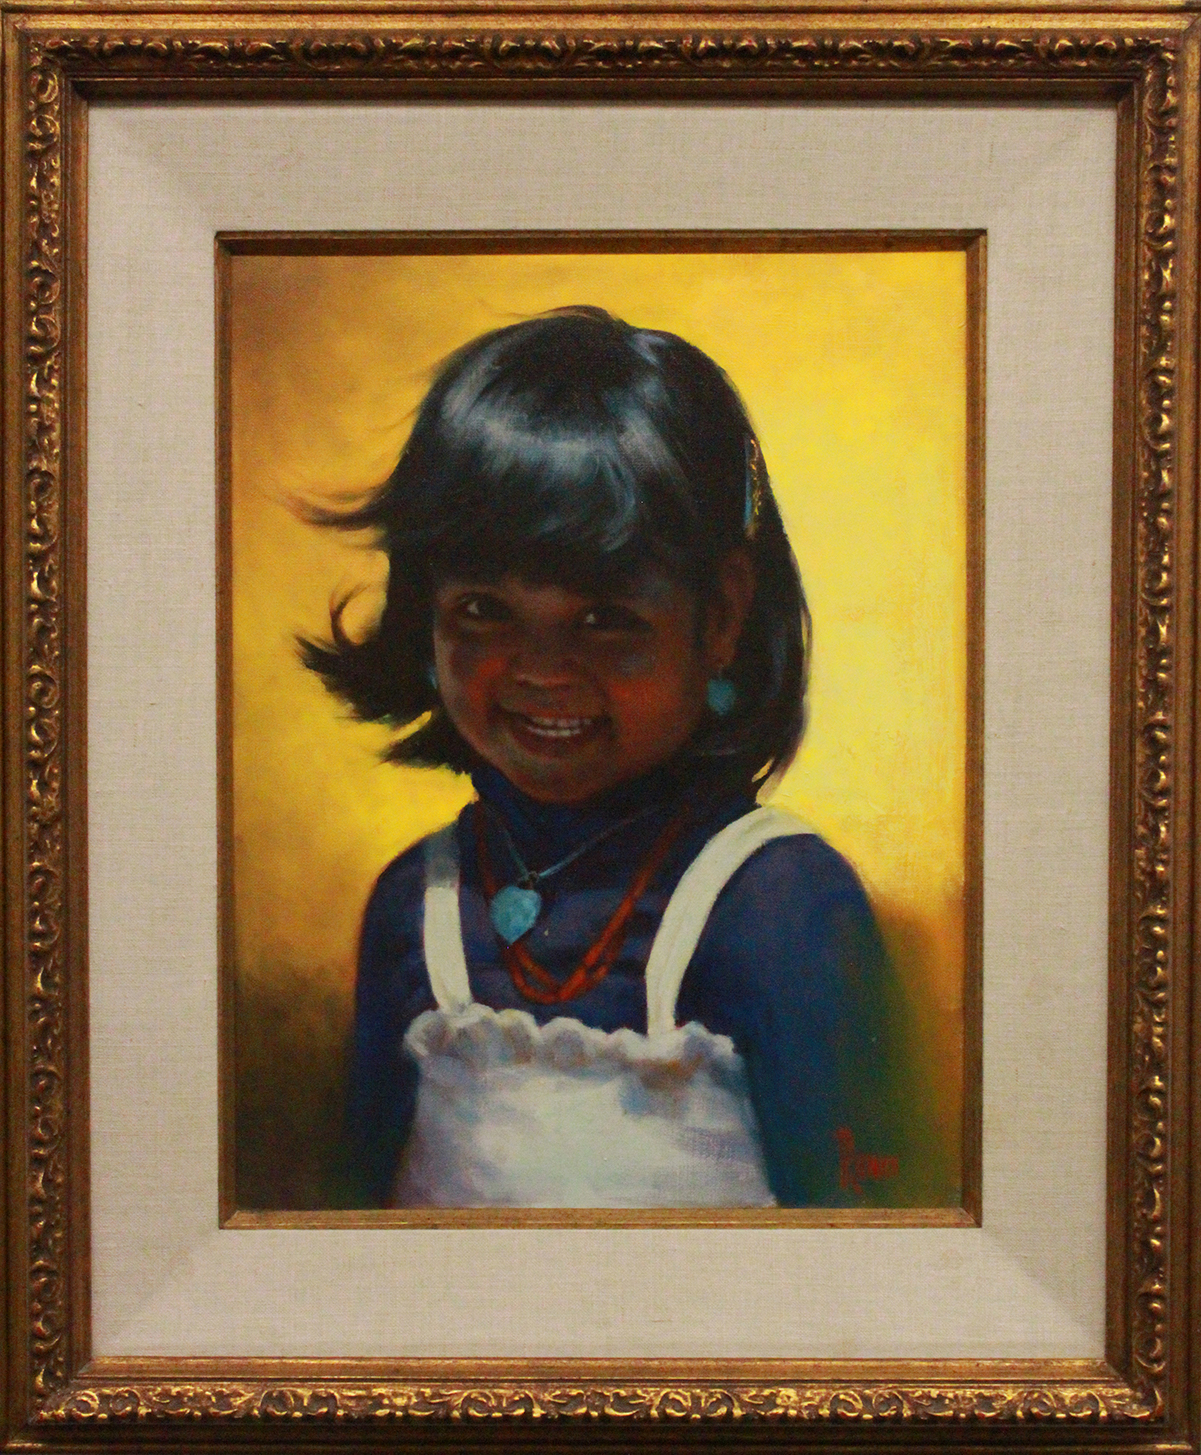 painted portrait of a young Native American girl